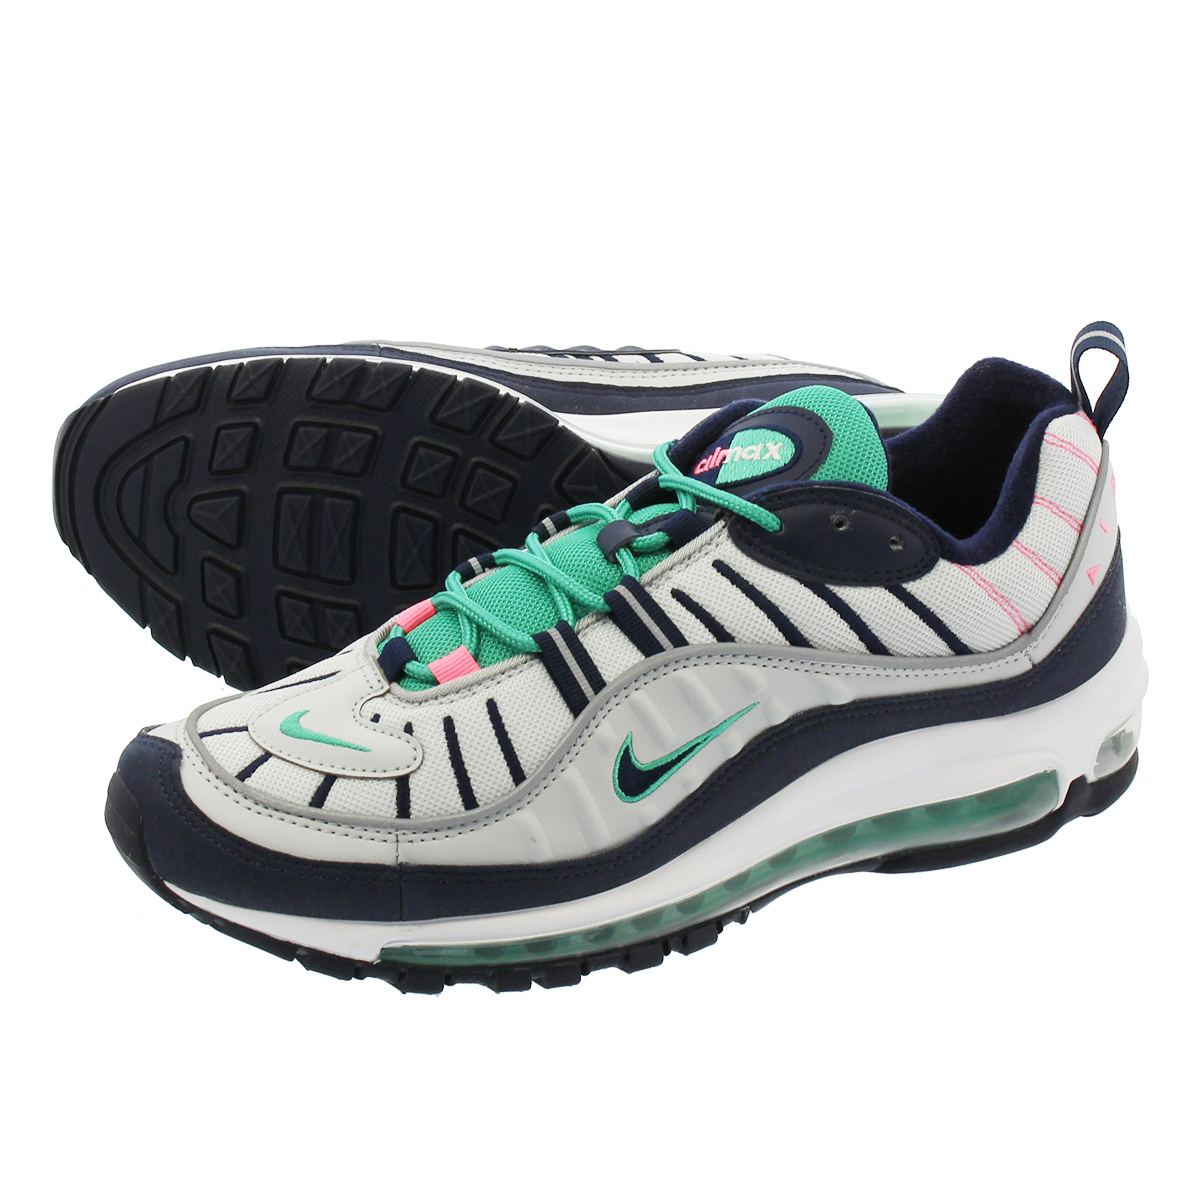 cb9668a2d024 LOWTEX PLUS  NIKE AIR MAX 98 Kie Ney AMAX 98 PURE PLATINUM OBSIDIAN KINETIC  GREEN